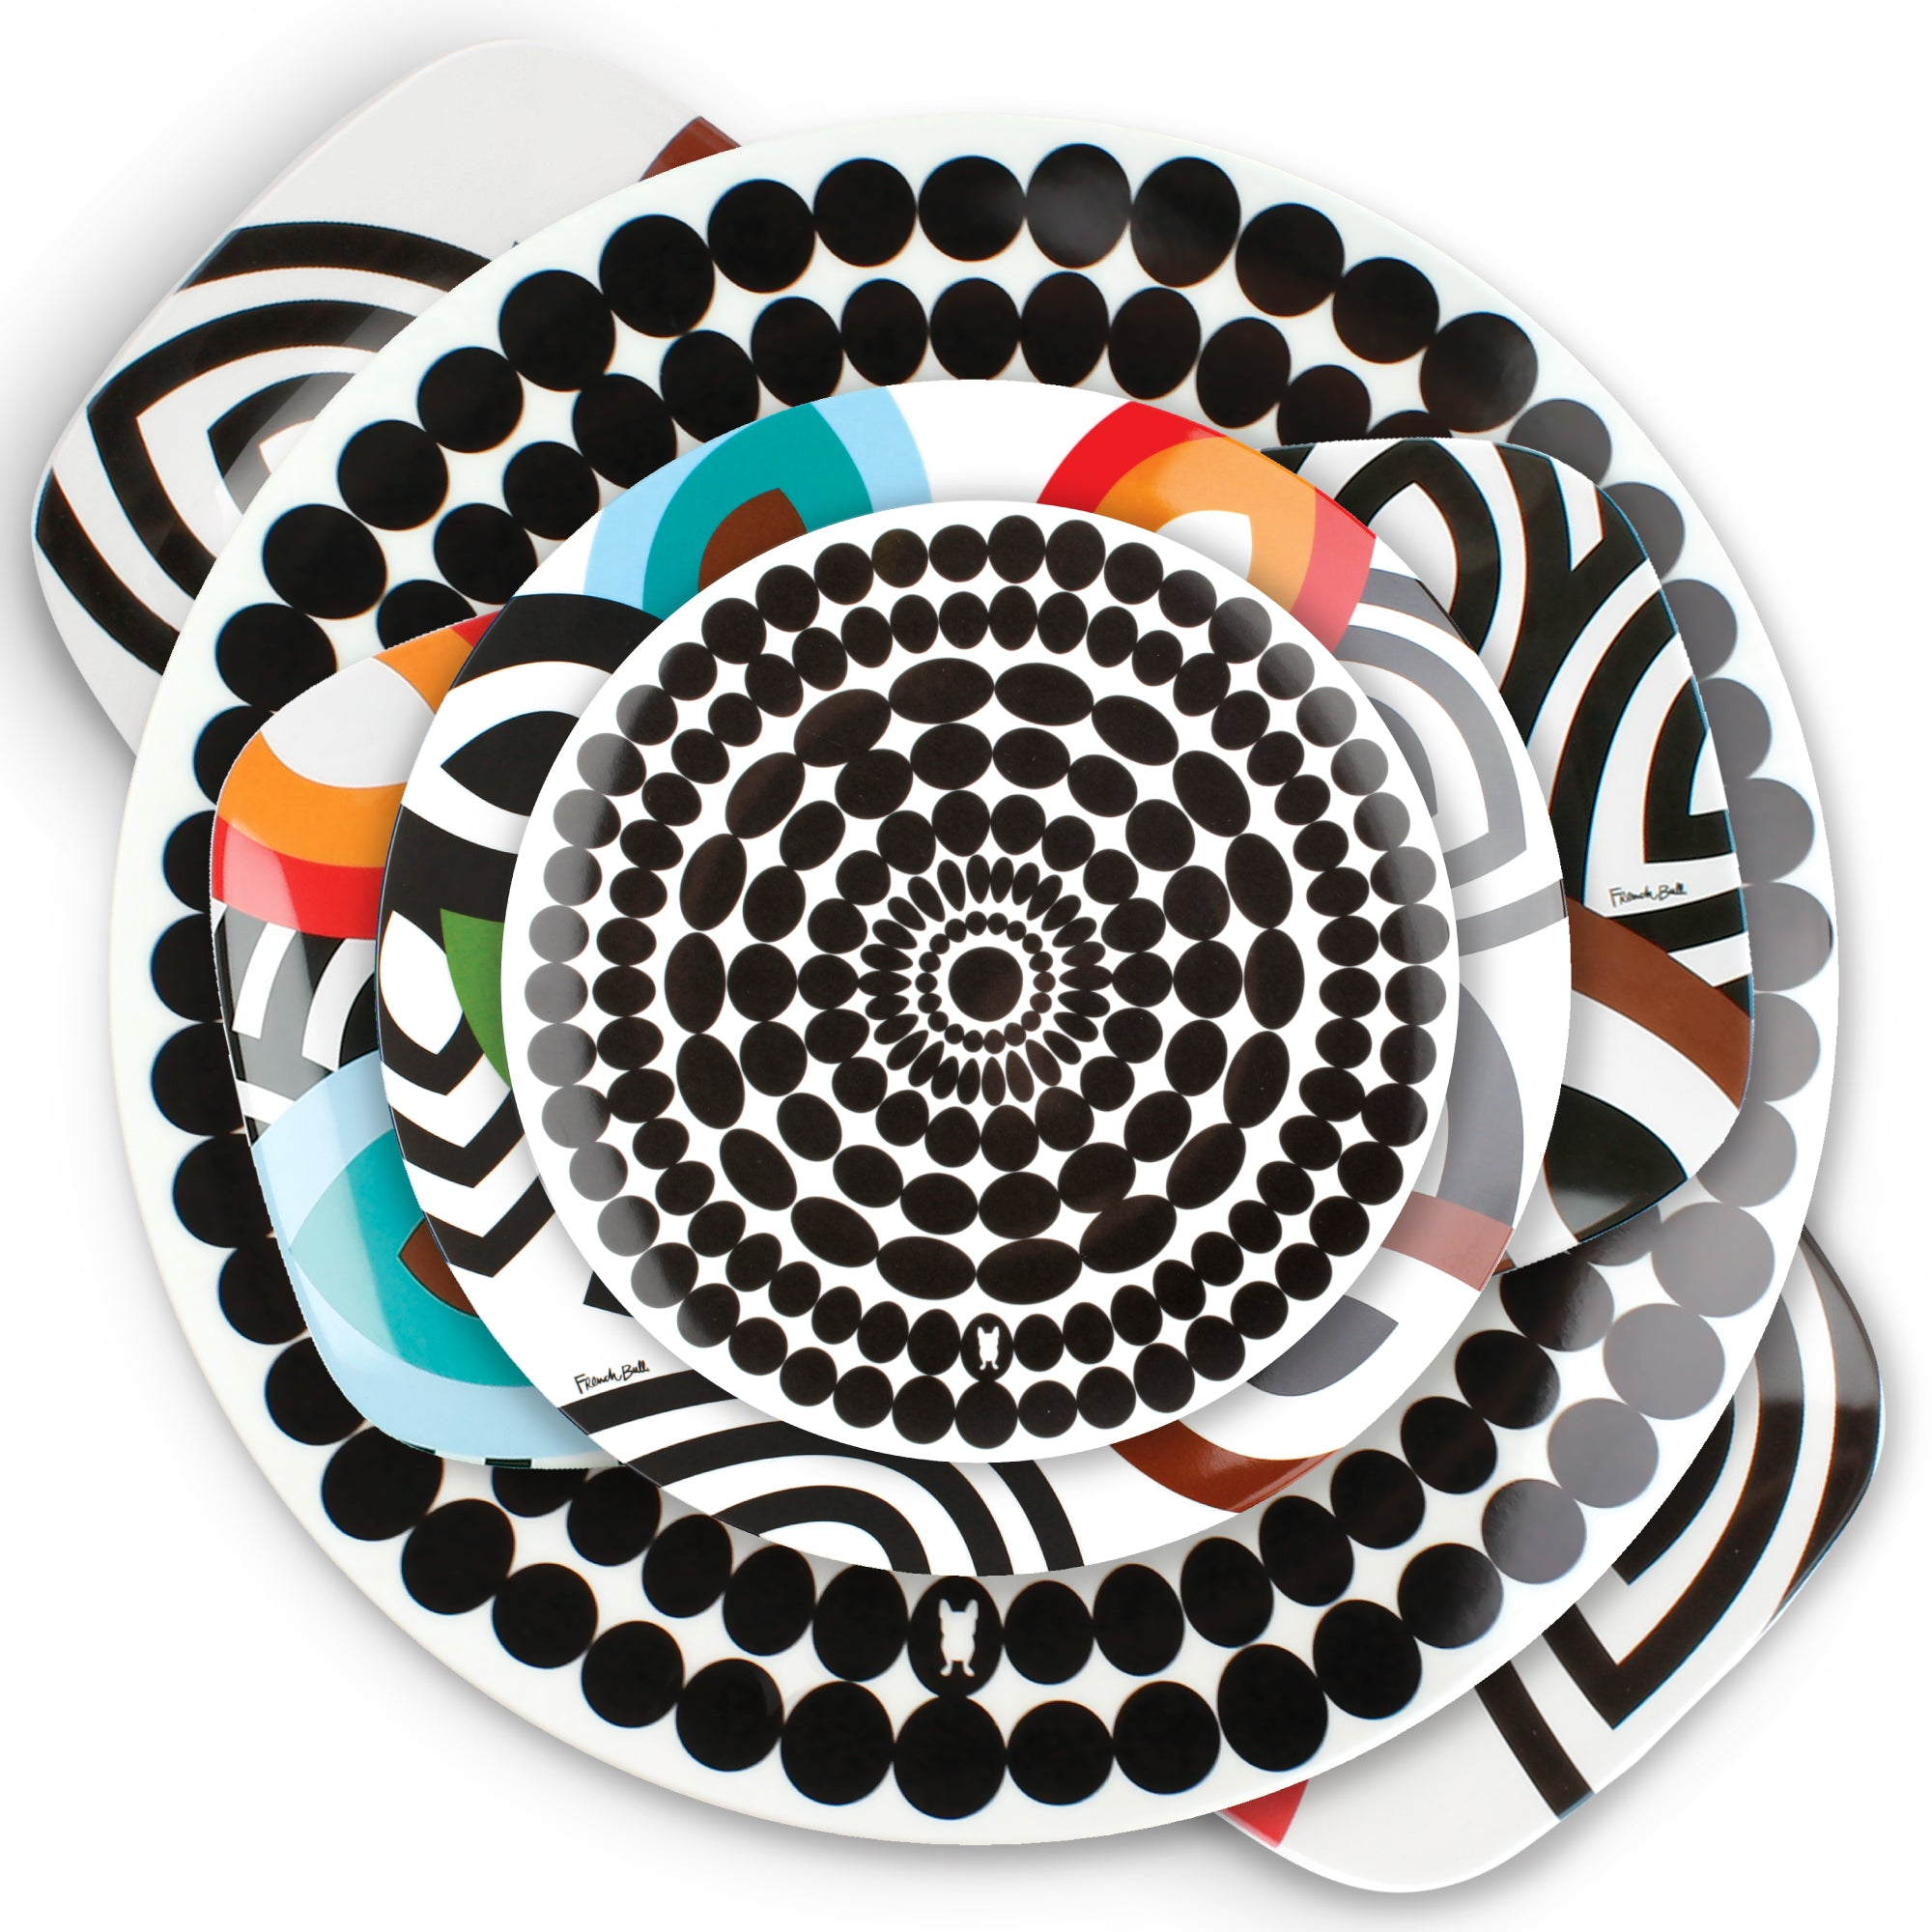 Foli Plate and Platter Collection  sc 1 st  French Bull & Melamine Plates - French Bull